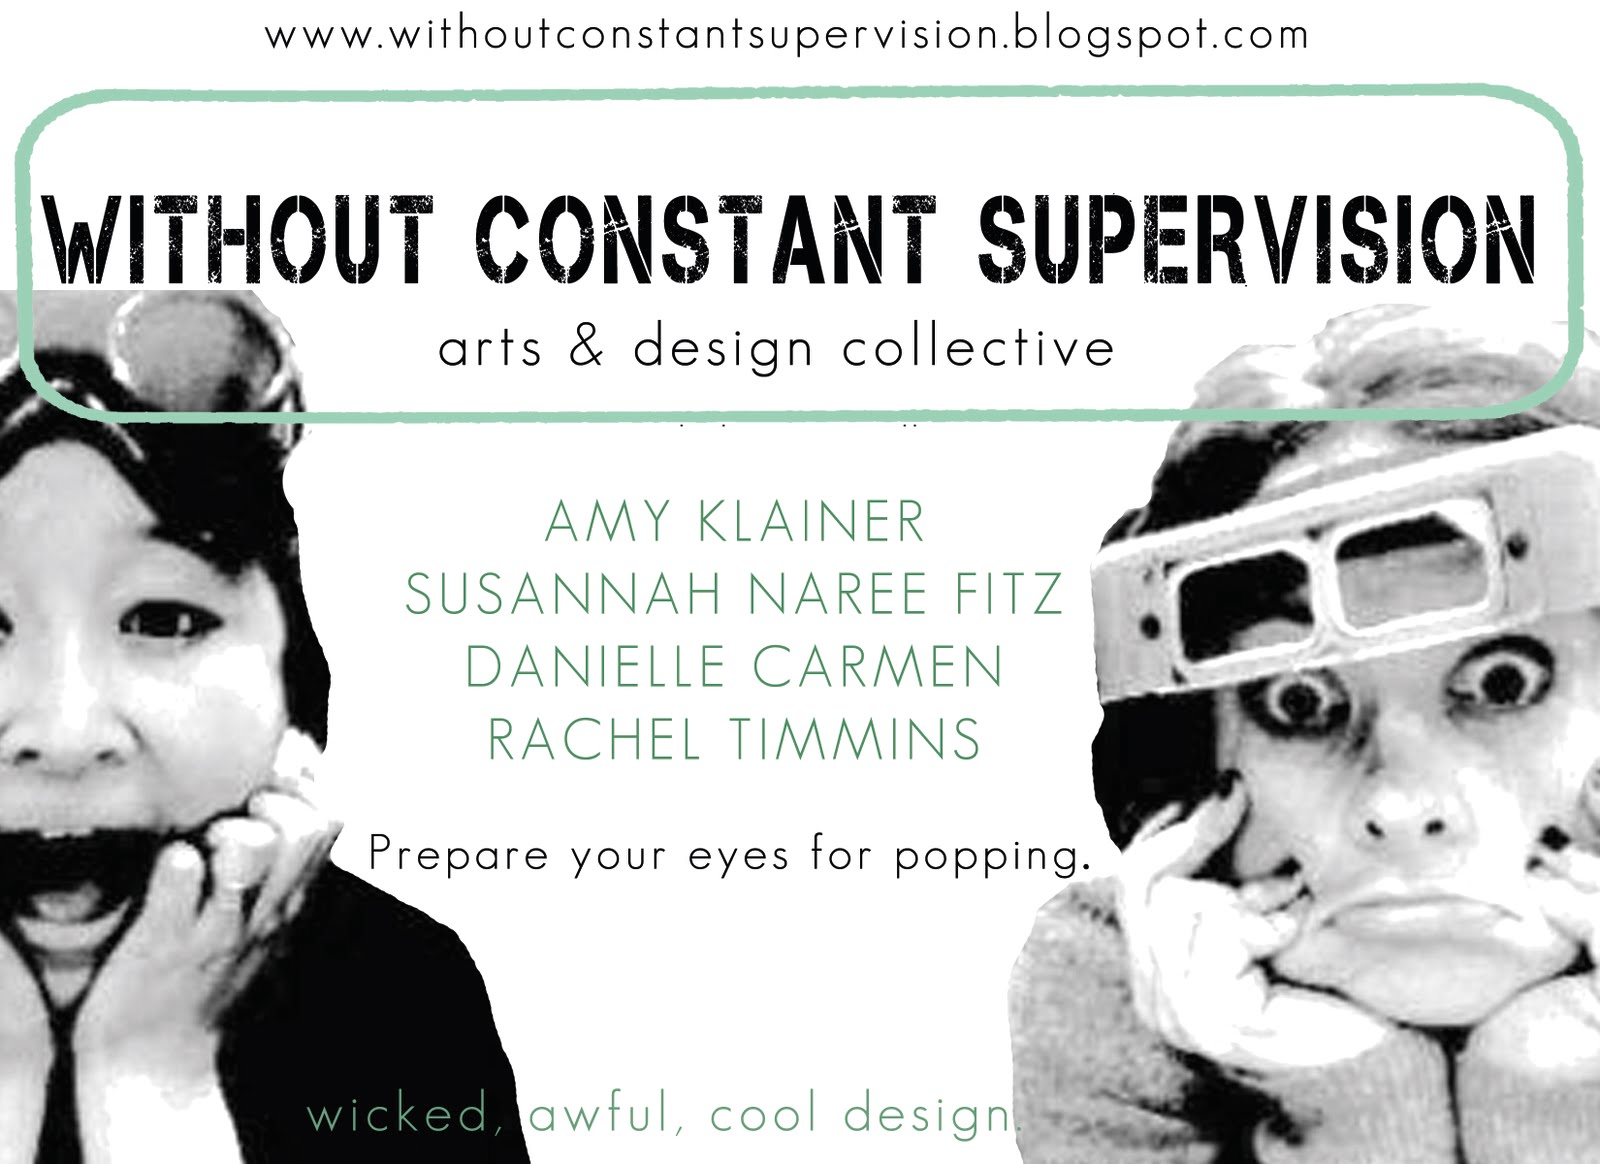 out constant supervision out constant supervision arts design collective was launched in the summer of 2010 by a small group of designers associated the towson